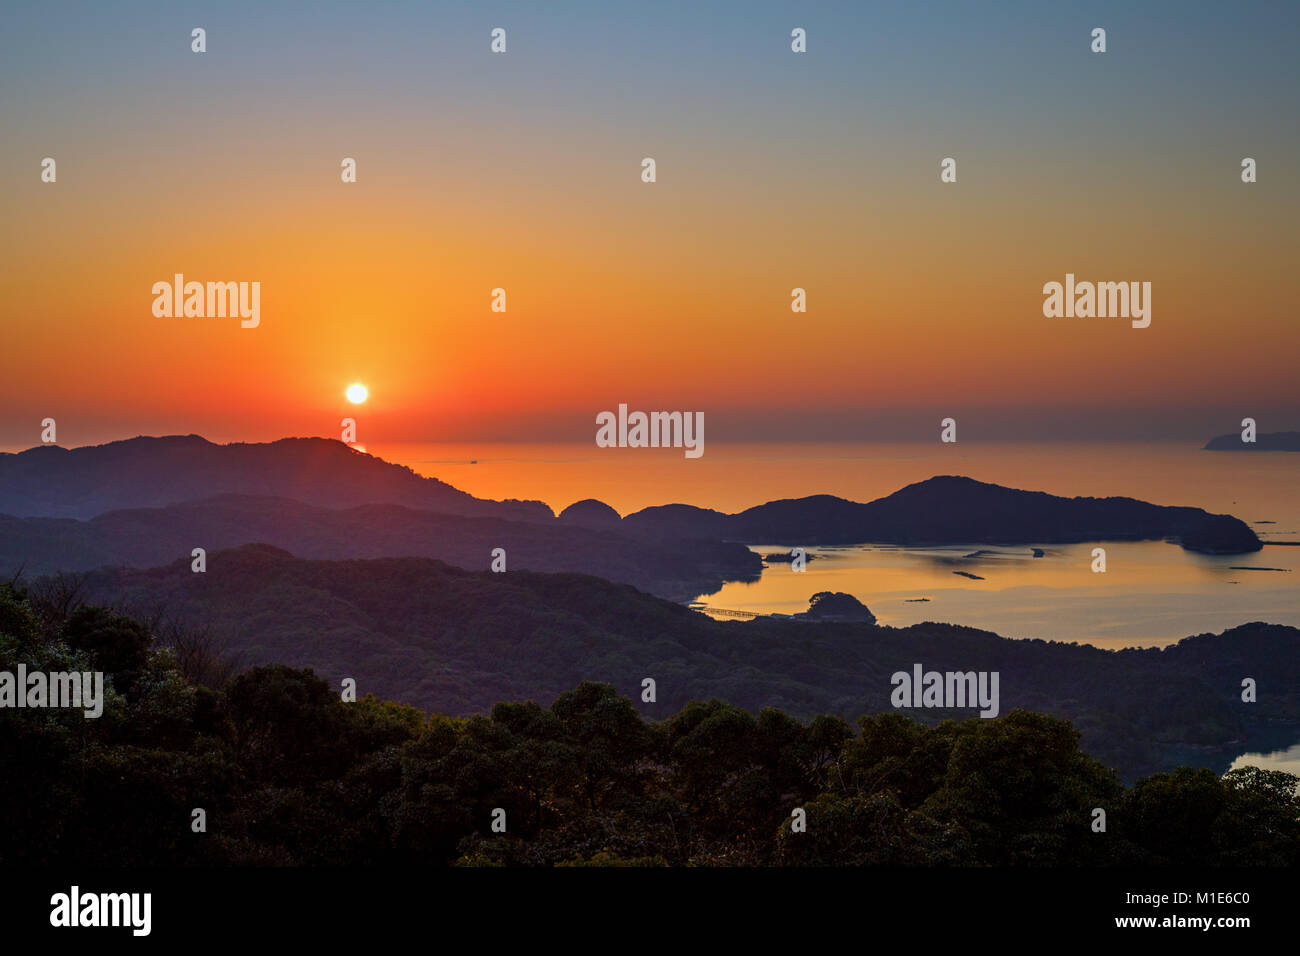 The orange sun setting over the calm, flat ocean with the silhouette of the islands of Sasebo, Japan Stock Photo